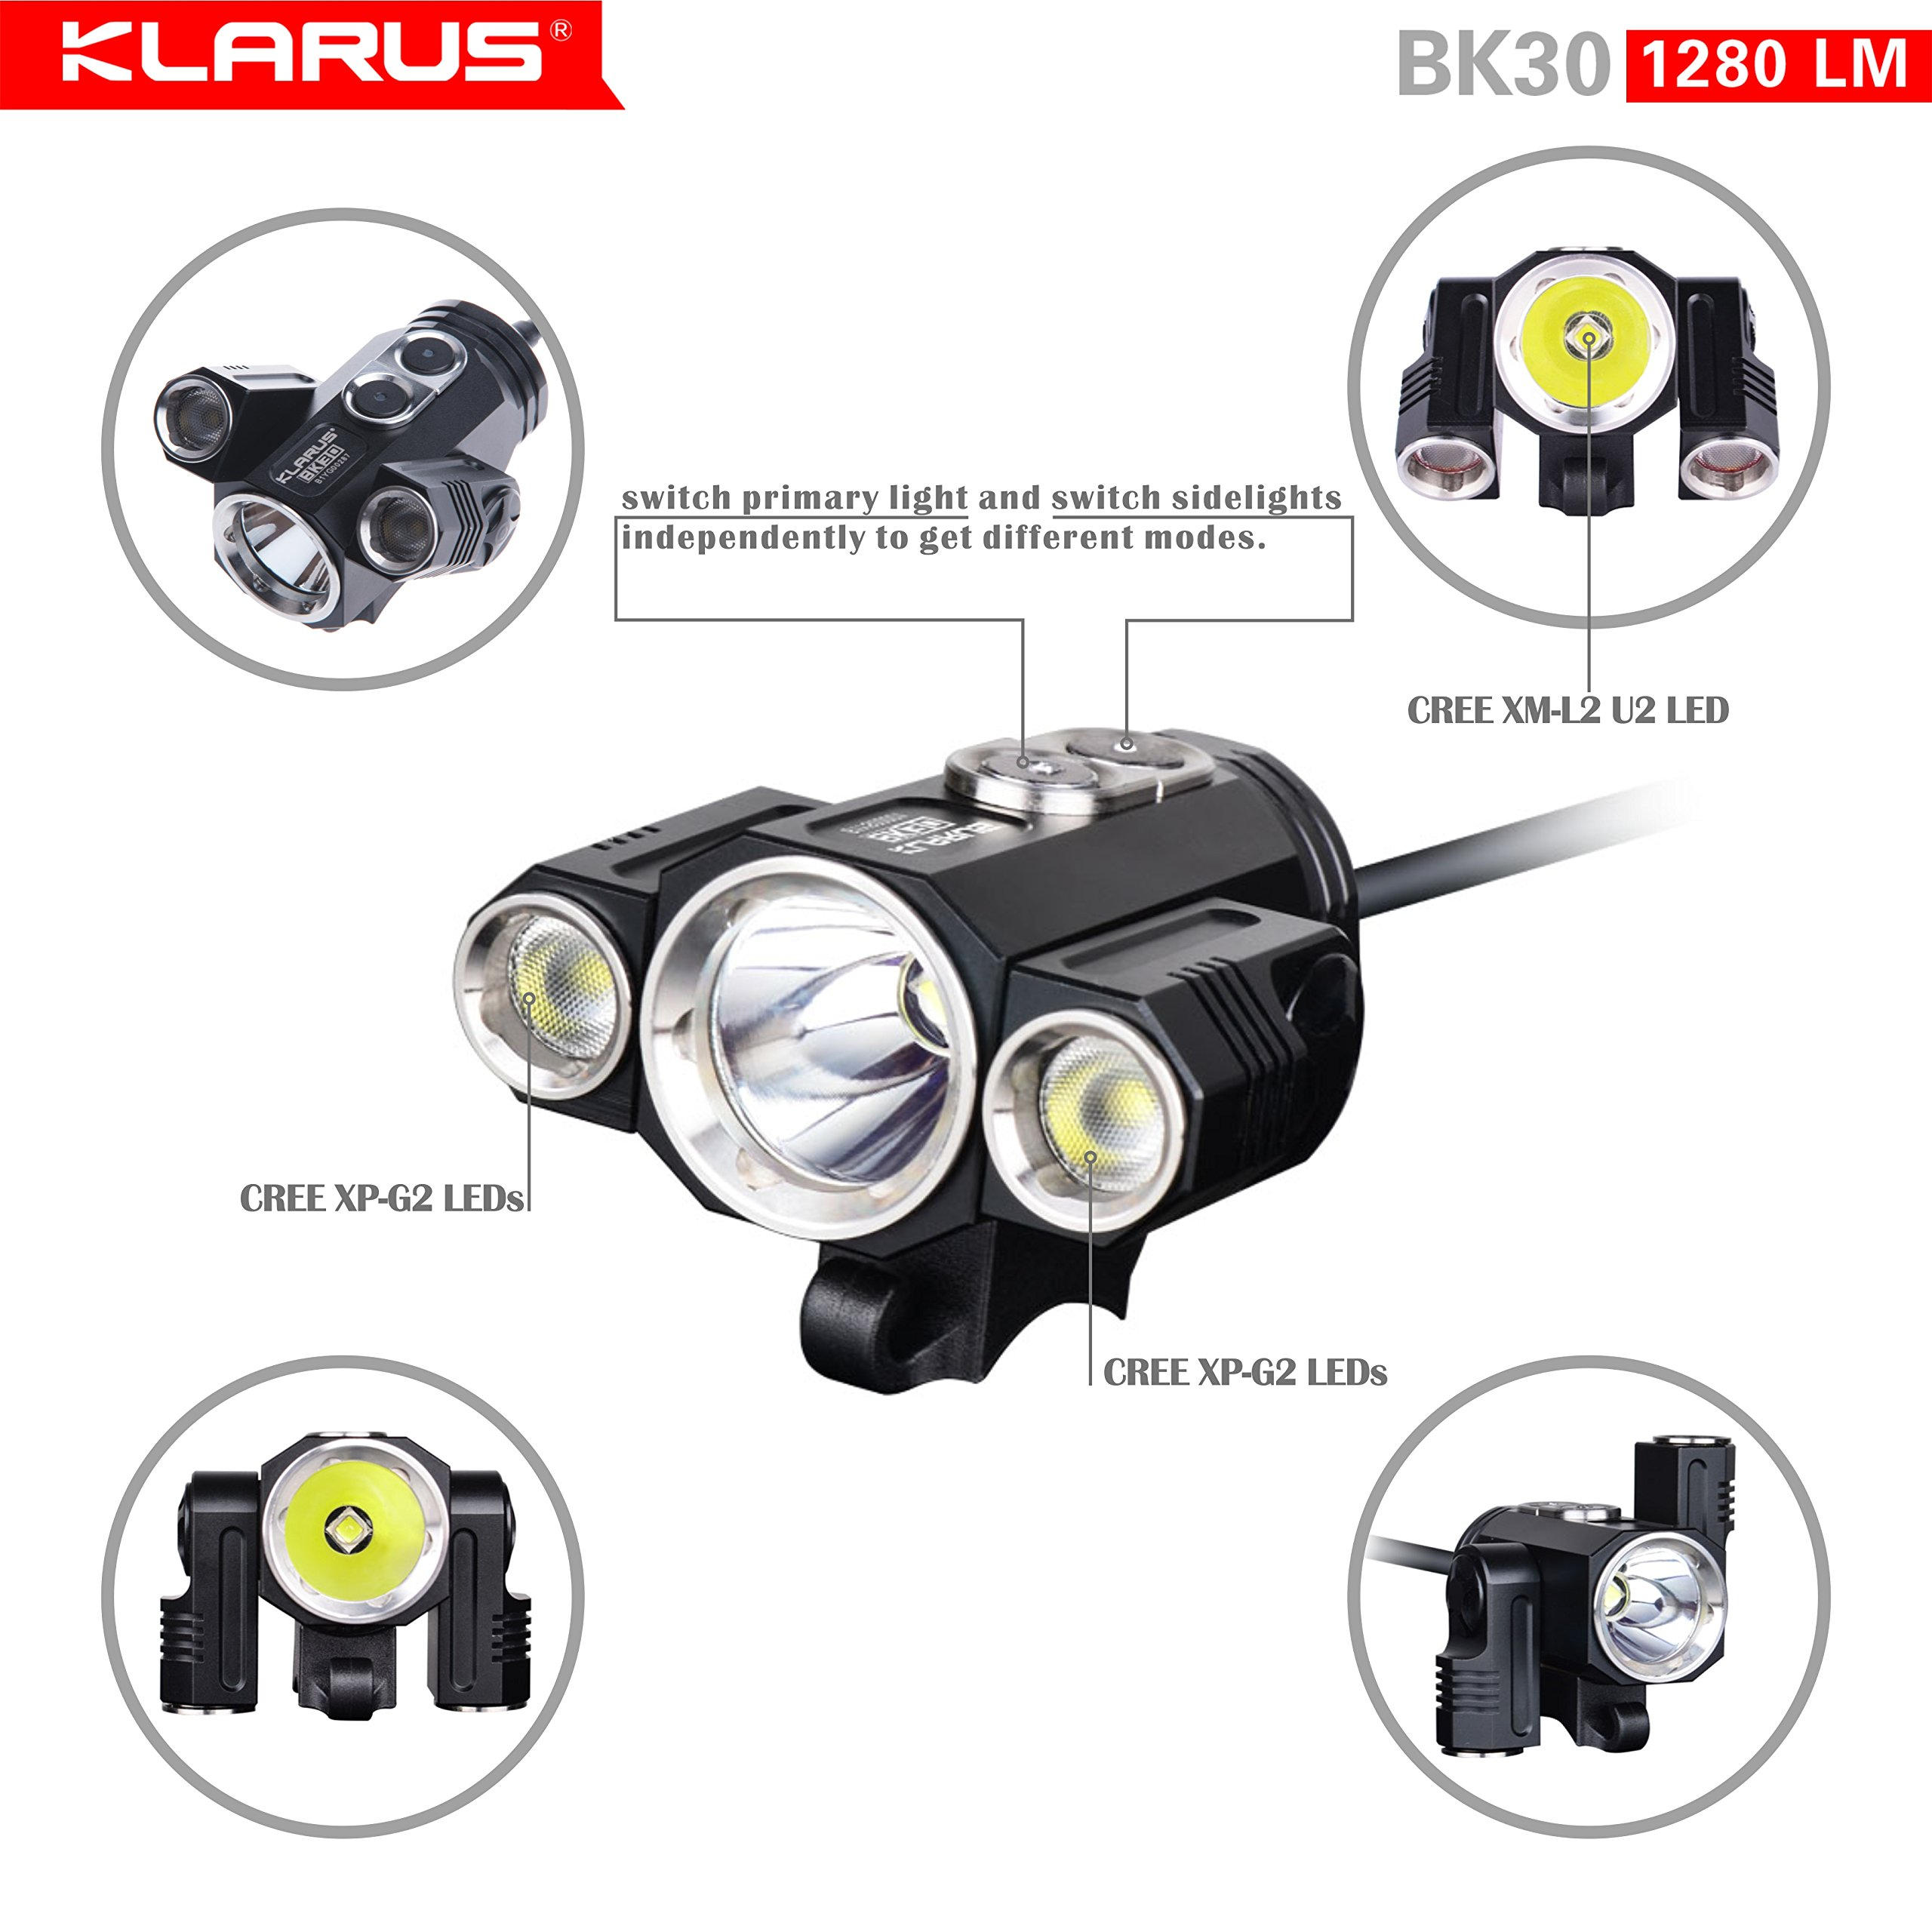 Newest Design Bundle: KLARUS BK30 1280 Lumen, Adjustable Triple Head LED Bikelight, Main light CREE XM-L2 U2, side lights CREE XP-G2, Tools Free, with C2 Charger & two 18650 Rechargeable Batteries by Klarus (Image #1)